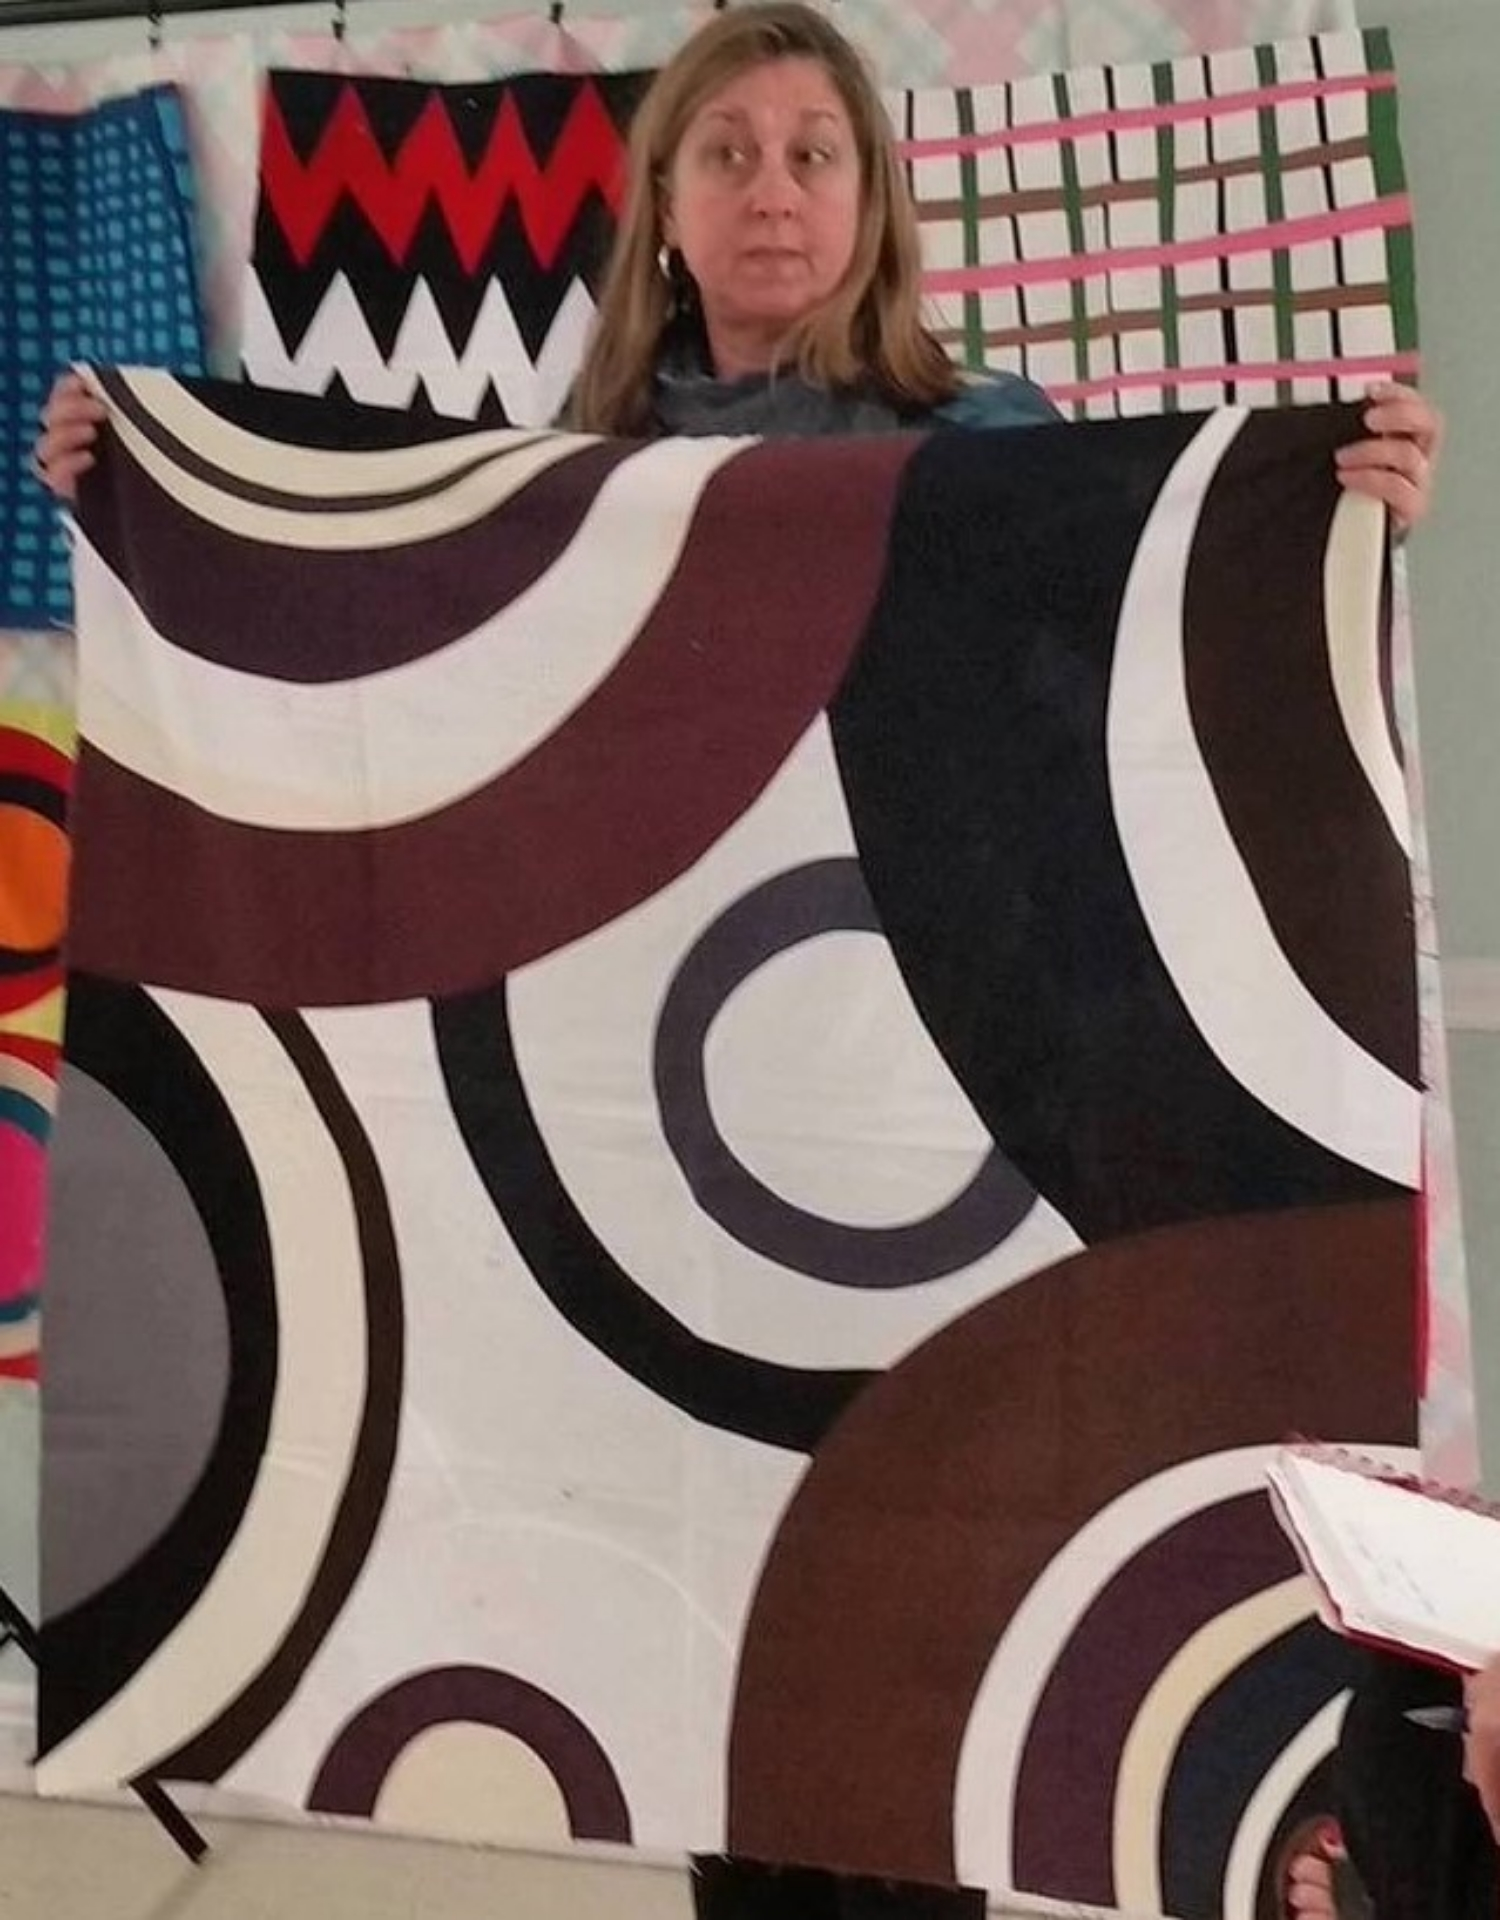 Maria's large circles and curves quilt top